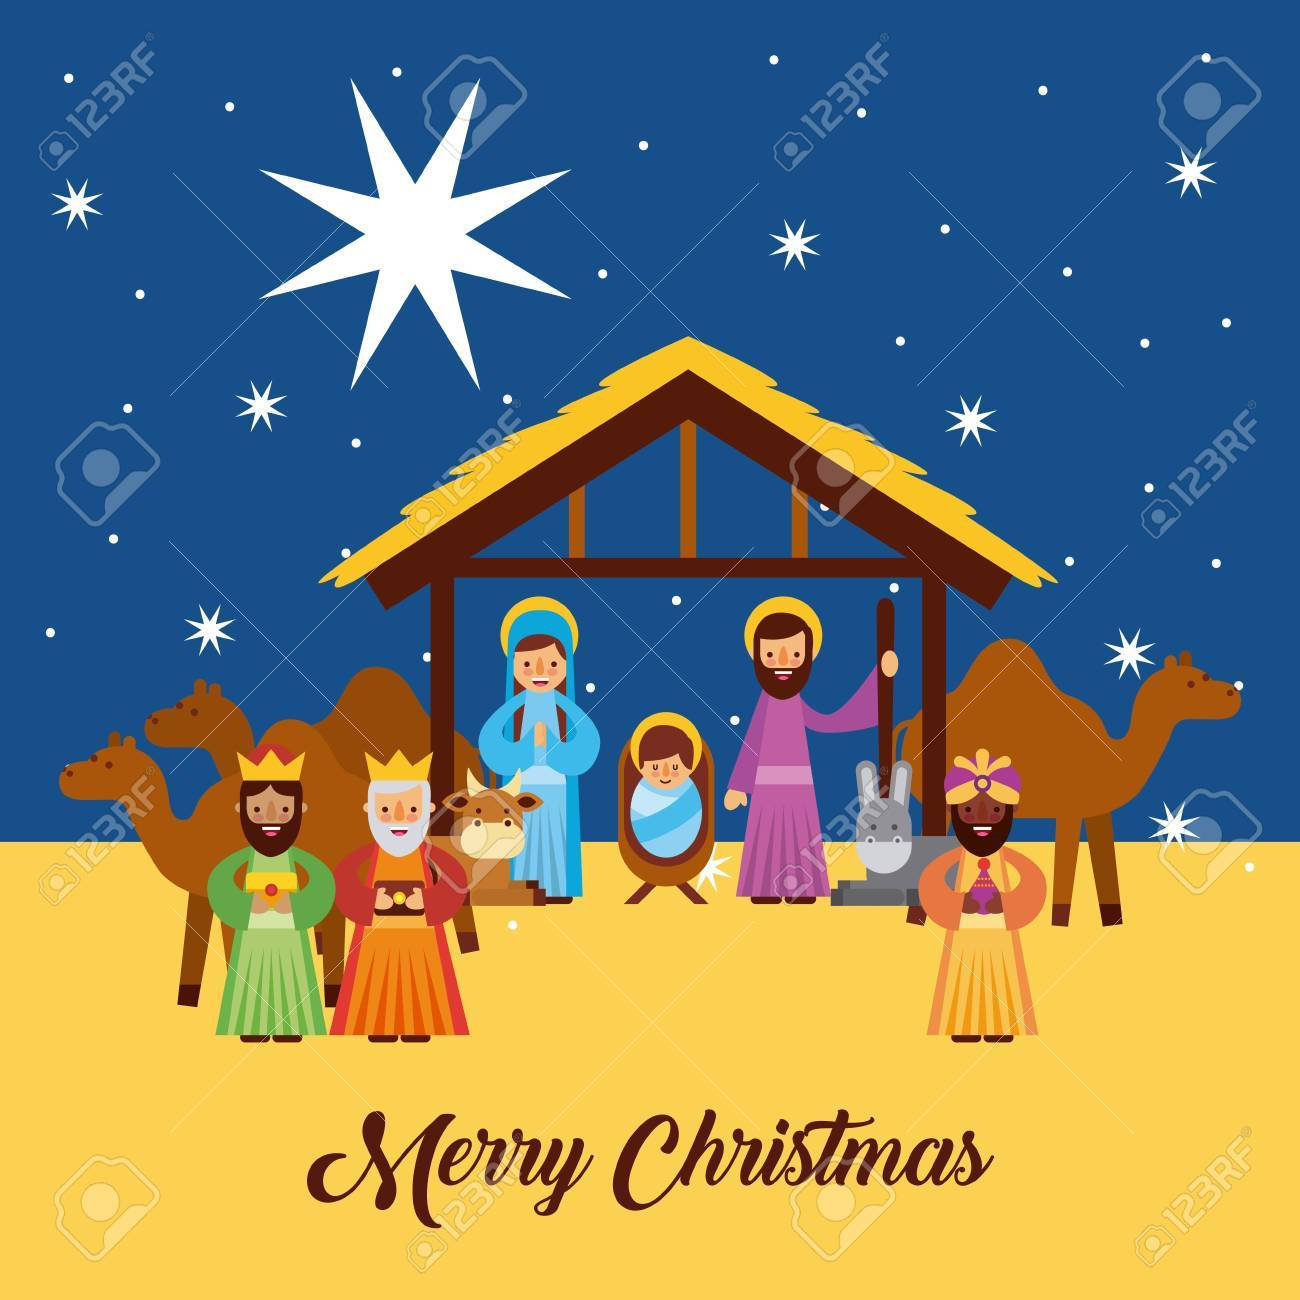 Merry Christmas Greetings With Jesus Born In Manger Joseph And ...